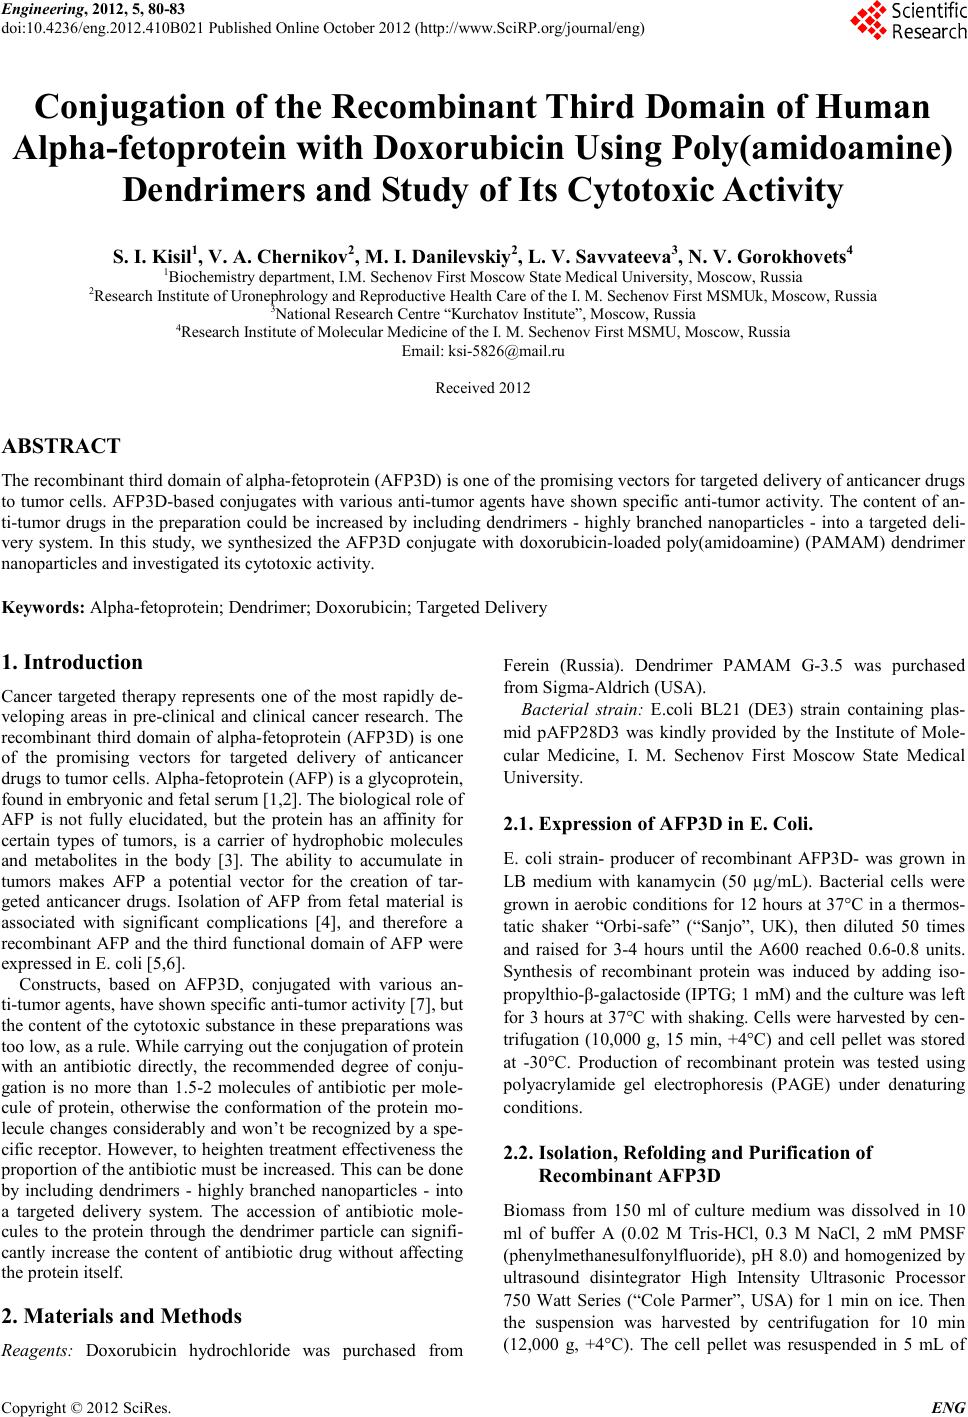 [Full text] Novel guanidinylated bioresponsive poly